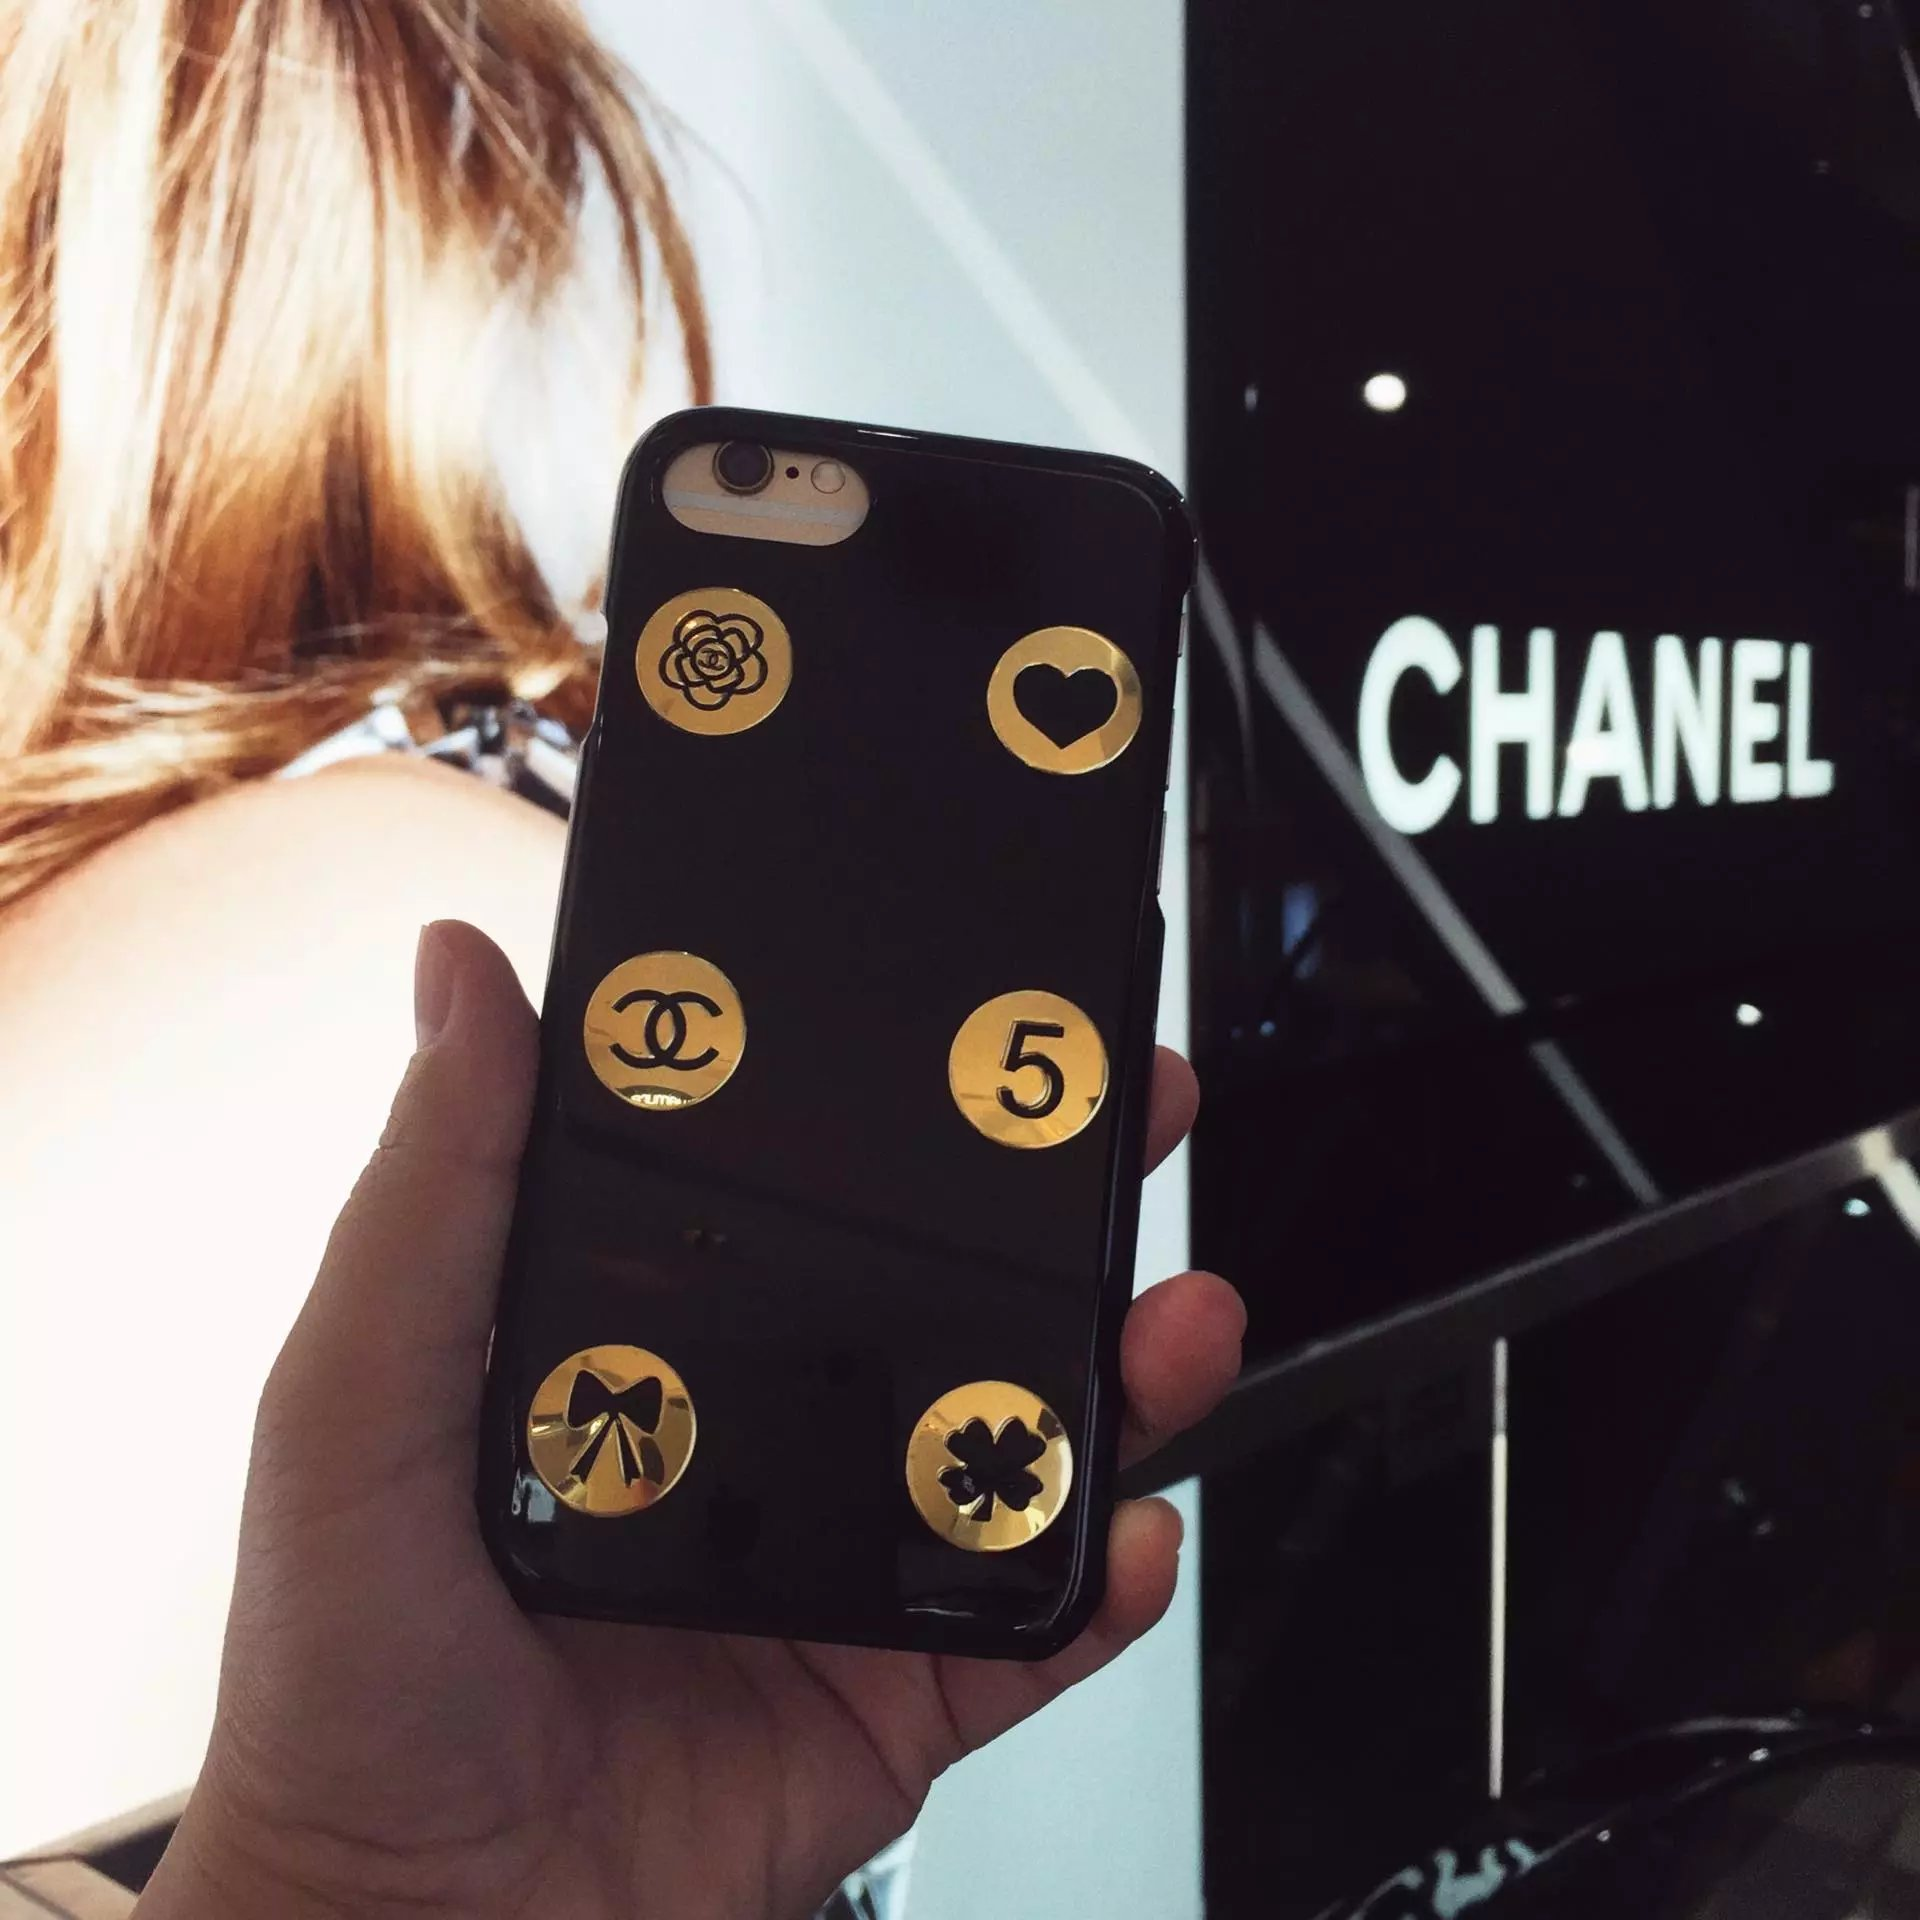 leather iphone 6s case iphone 6s cover apple fashion iphone6s case iphone 6sg release date iphone 6s big iphone covers for 6s popular iphone 6s cases designer iphone 6s cases and covers mobile cover and cases